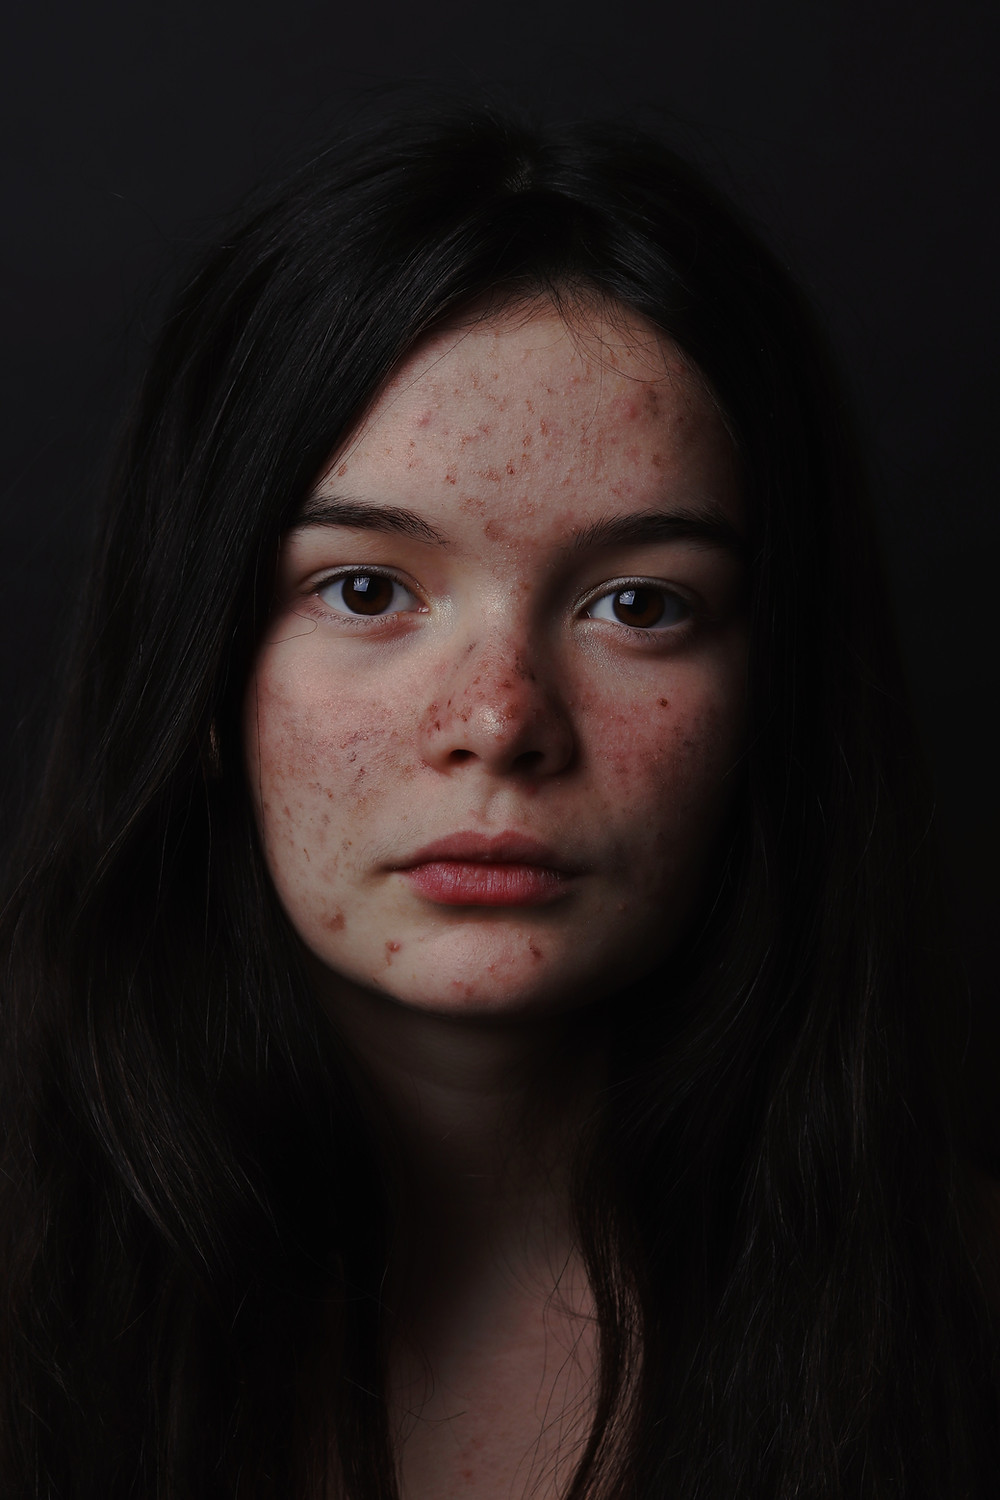 Young woman with acne scars and pimples